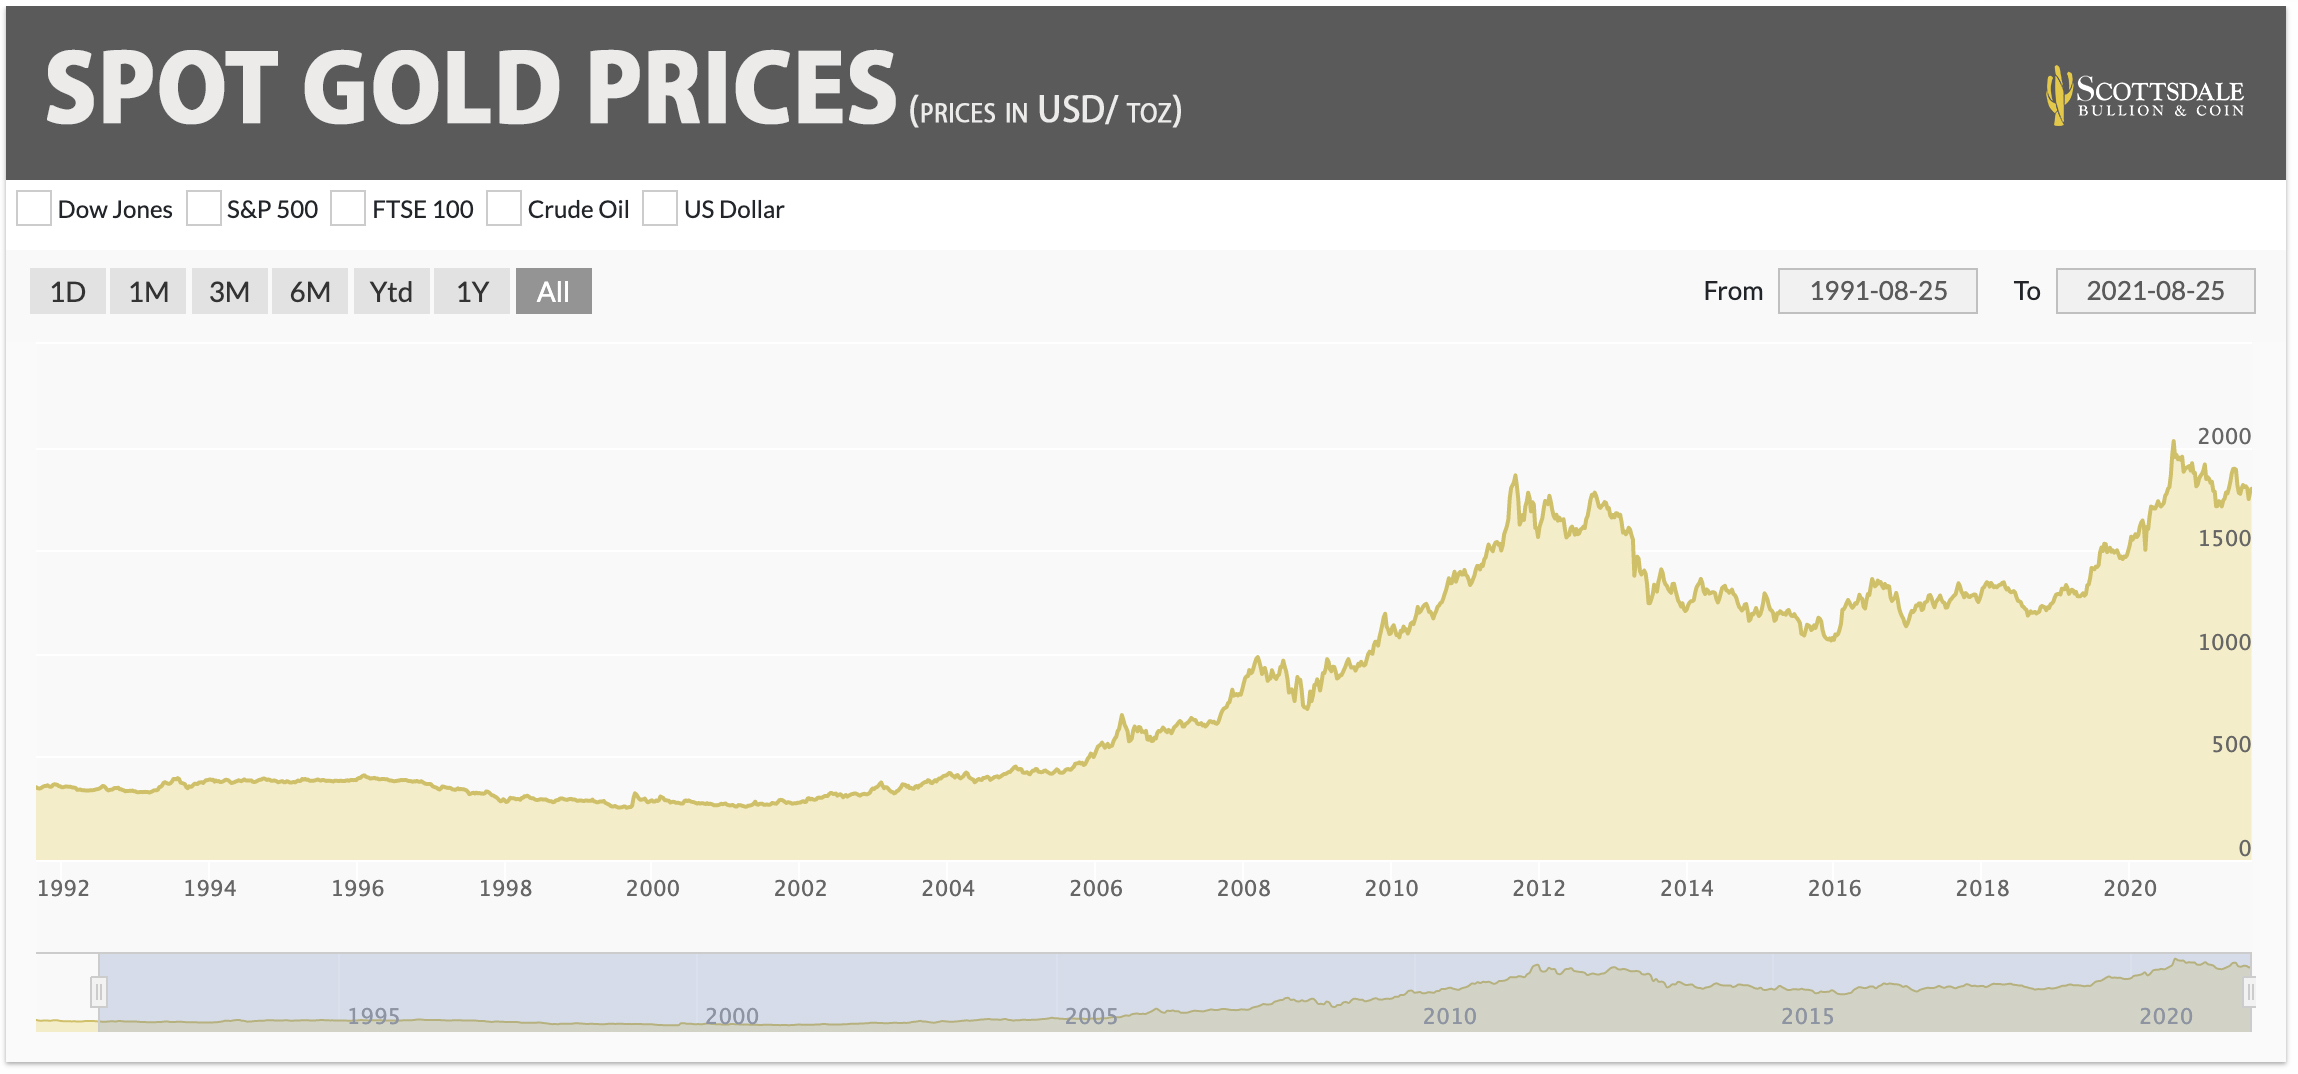 Spot Gold Price Chart 1991 to 2001